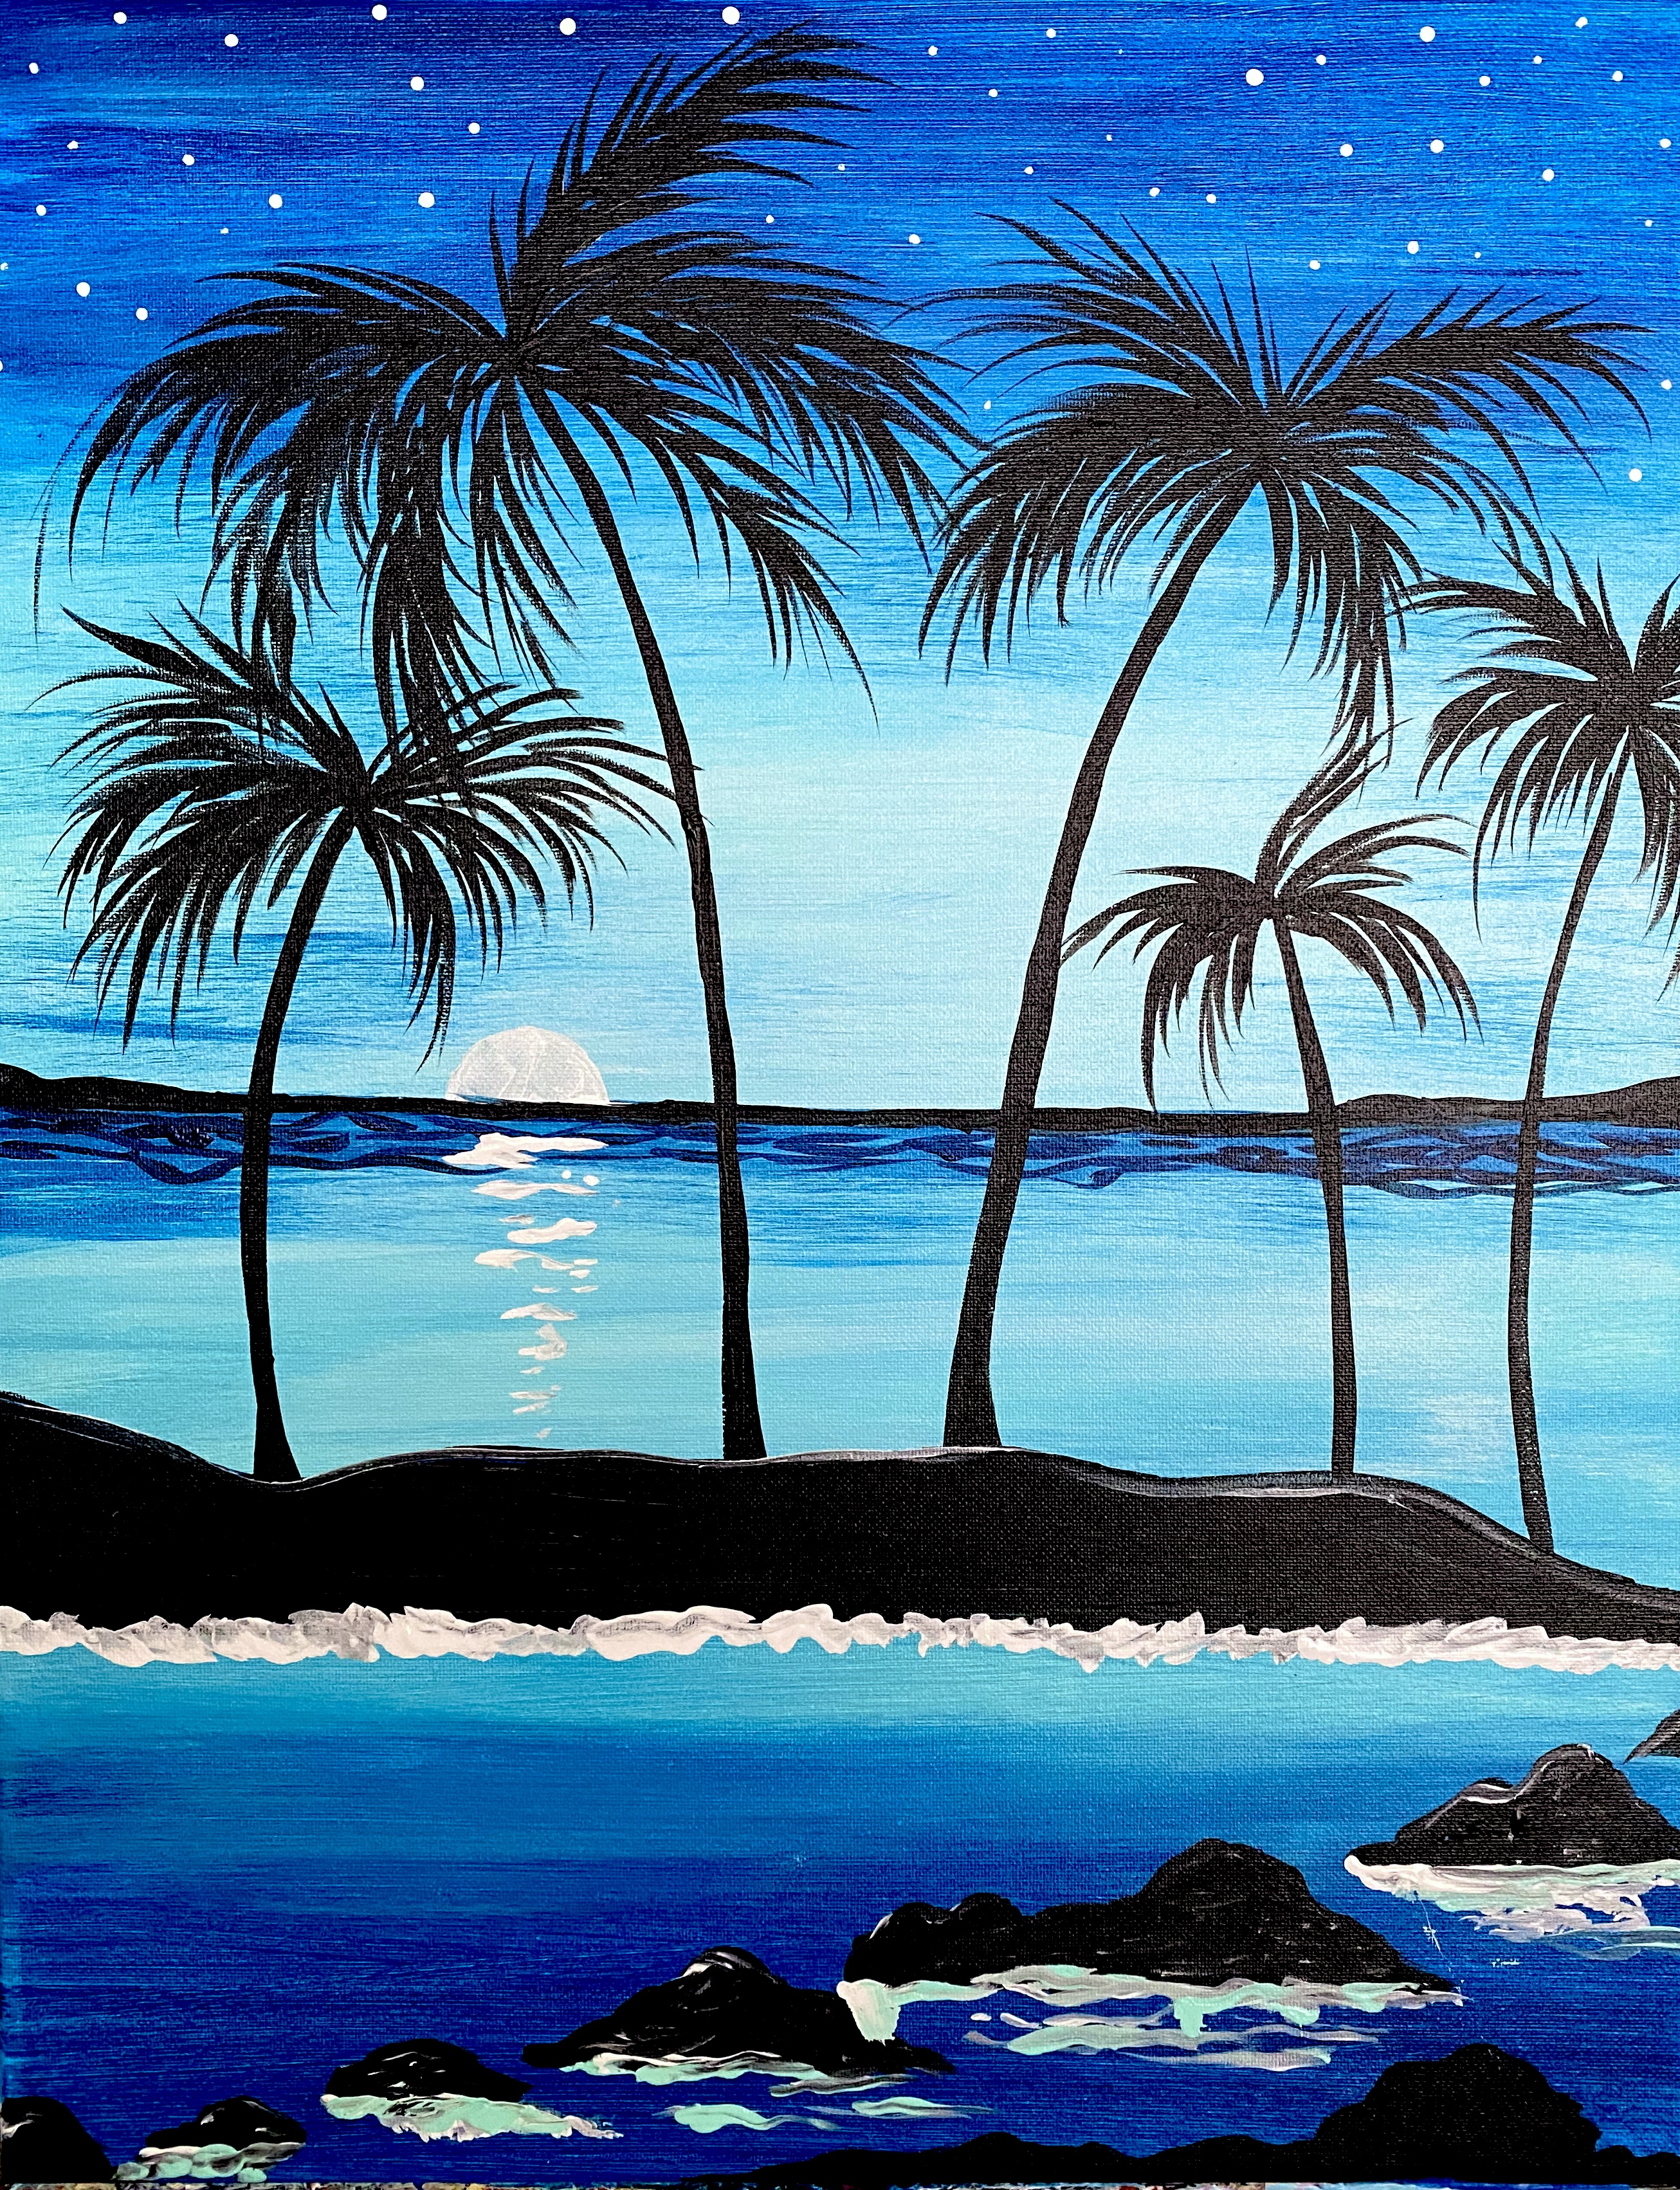 A Palm Tree Island Breeze experience project by Yaymaker